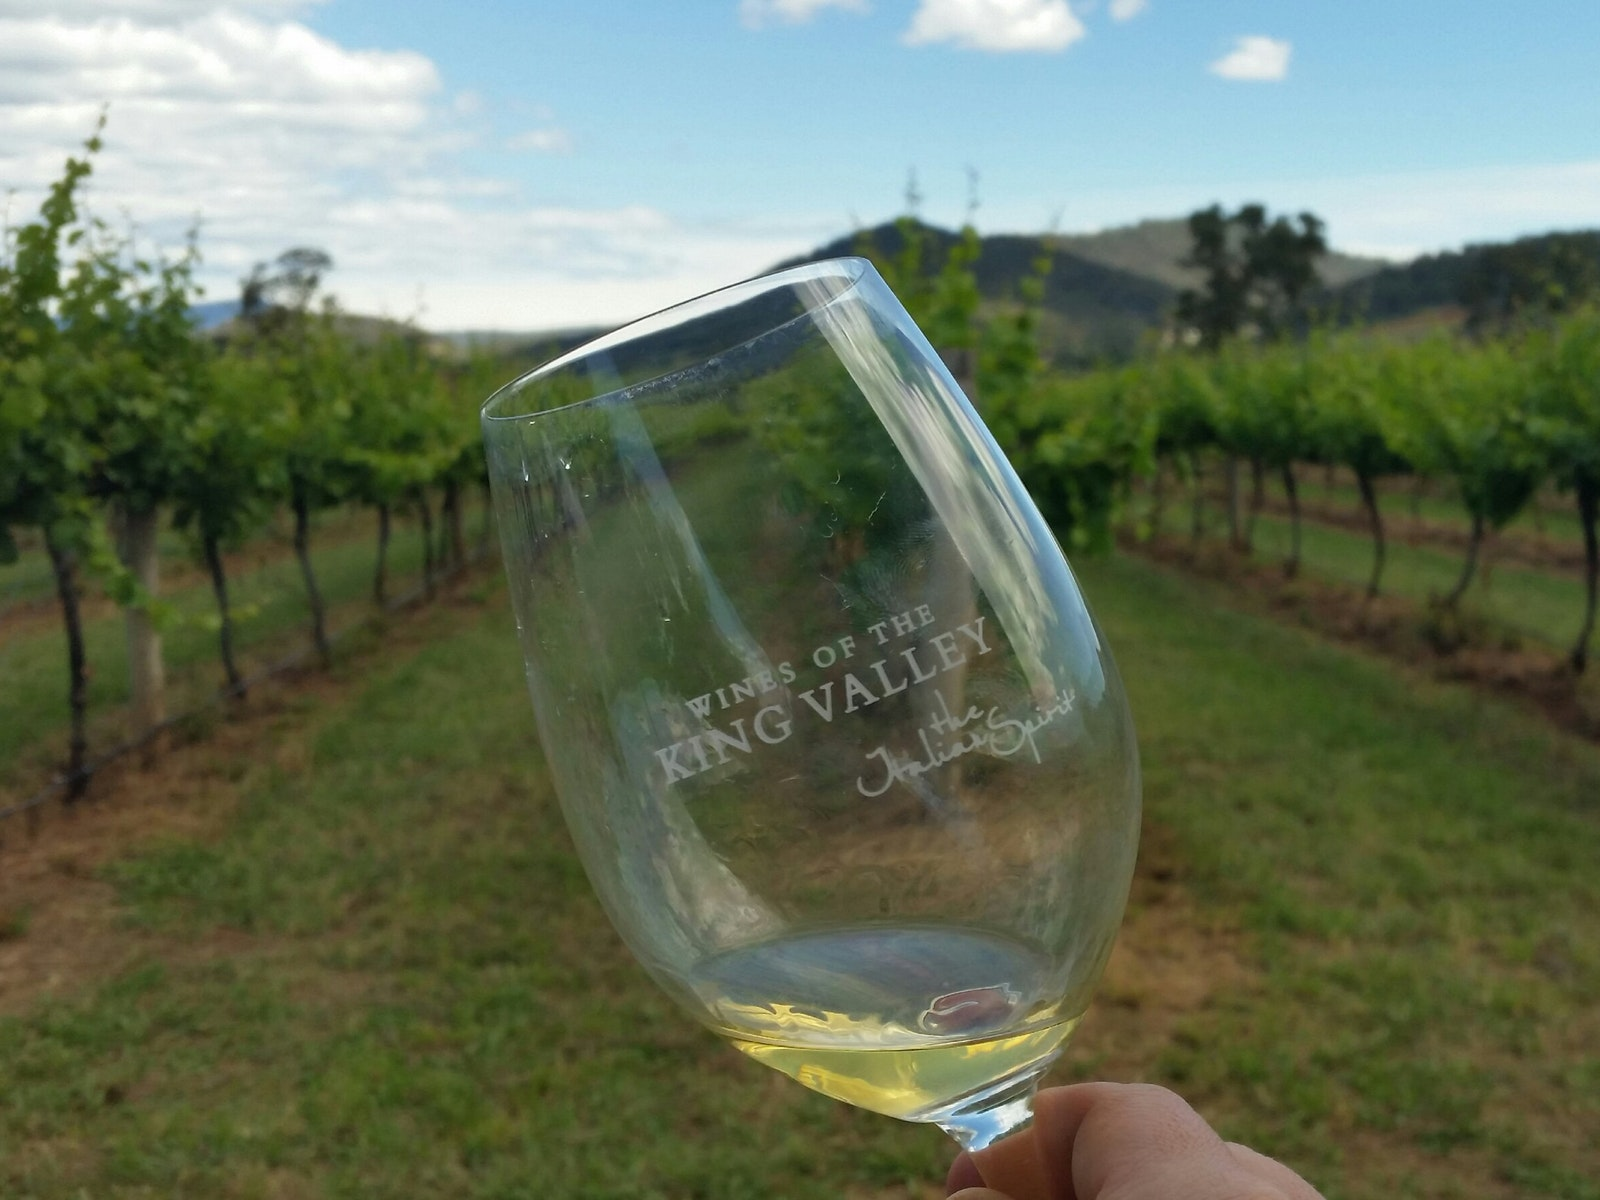 Taste the variety of wines of offer at local cellar doors